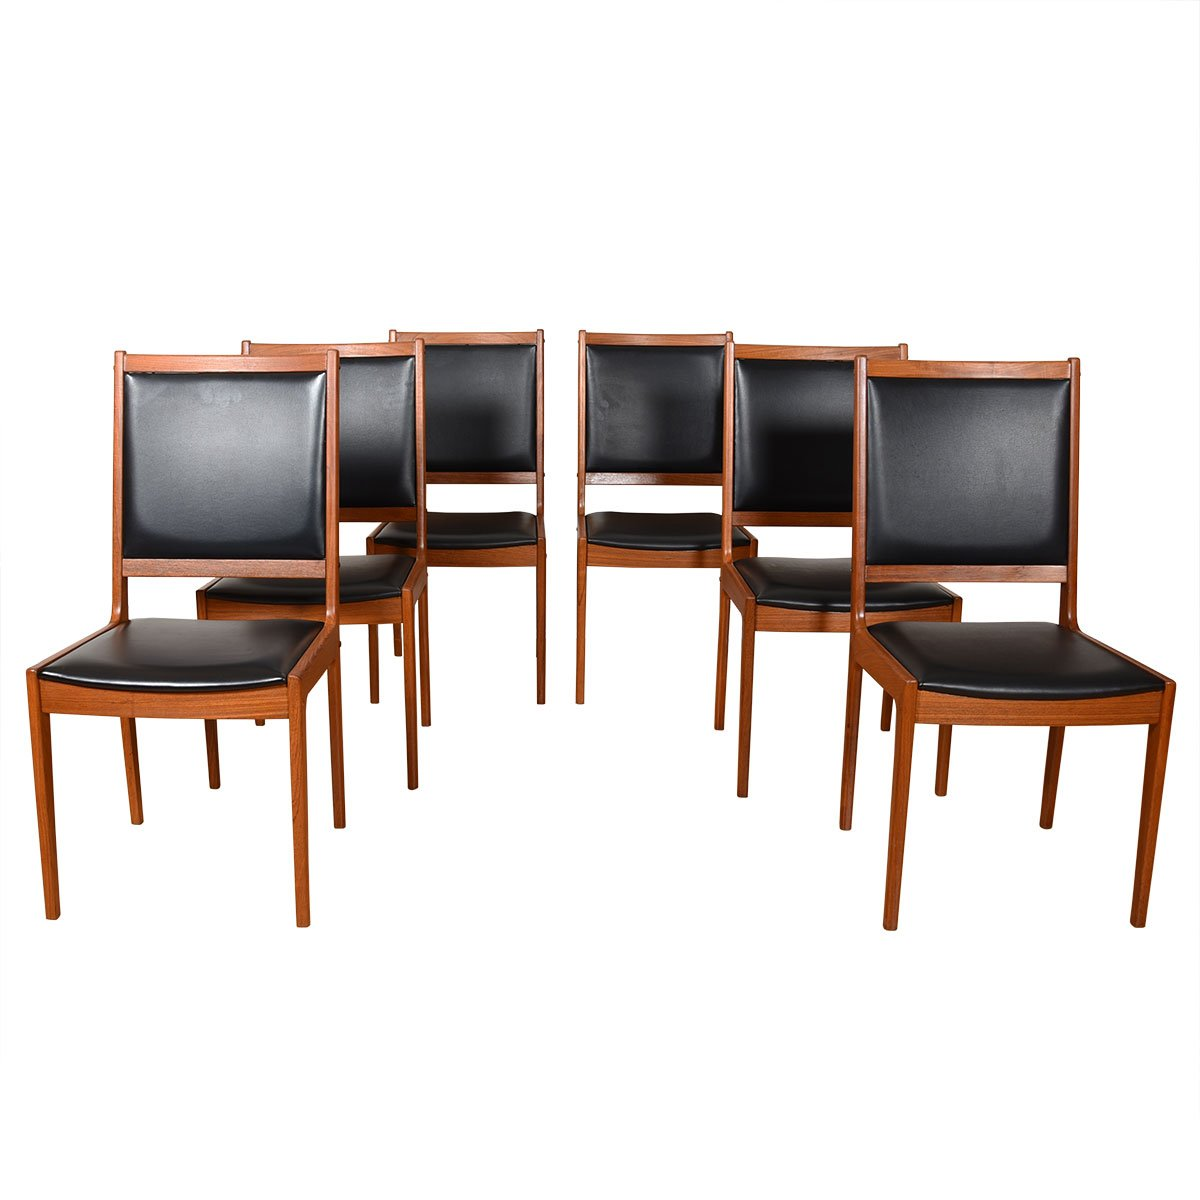 Set of 6 Danish Teak Upholstered Back Dining Chairs